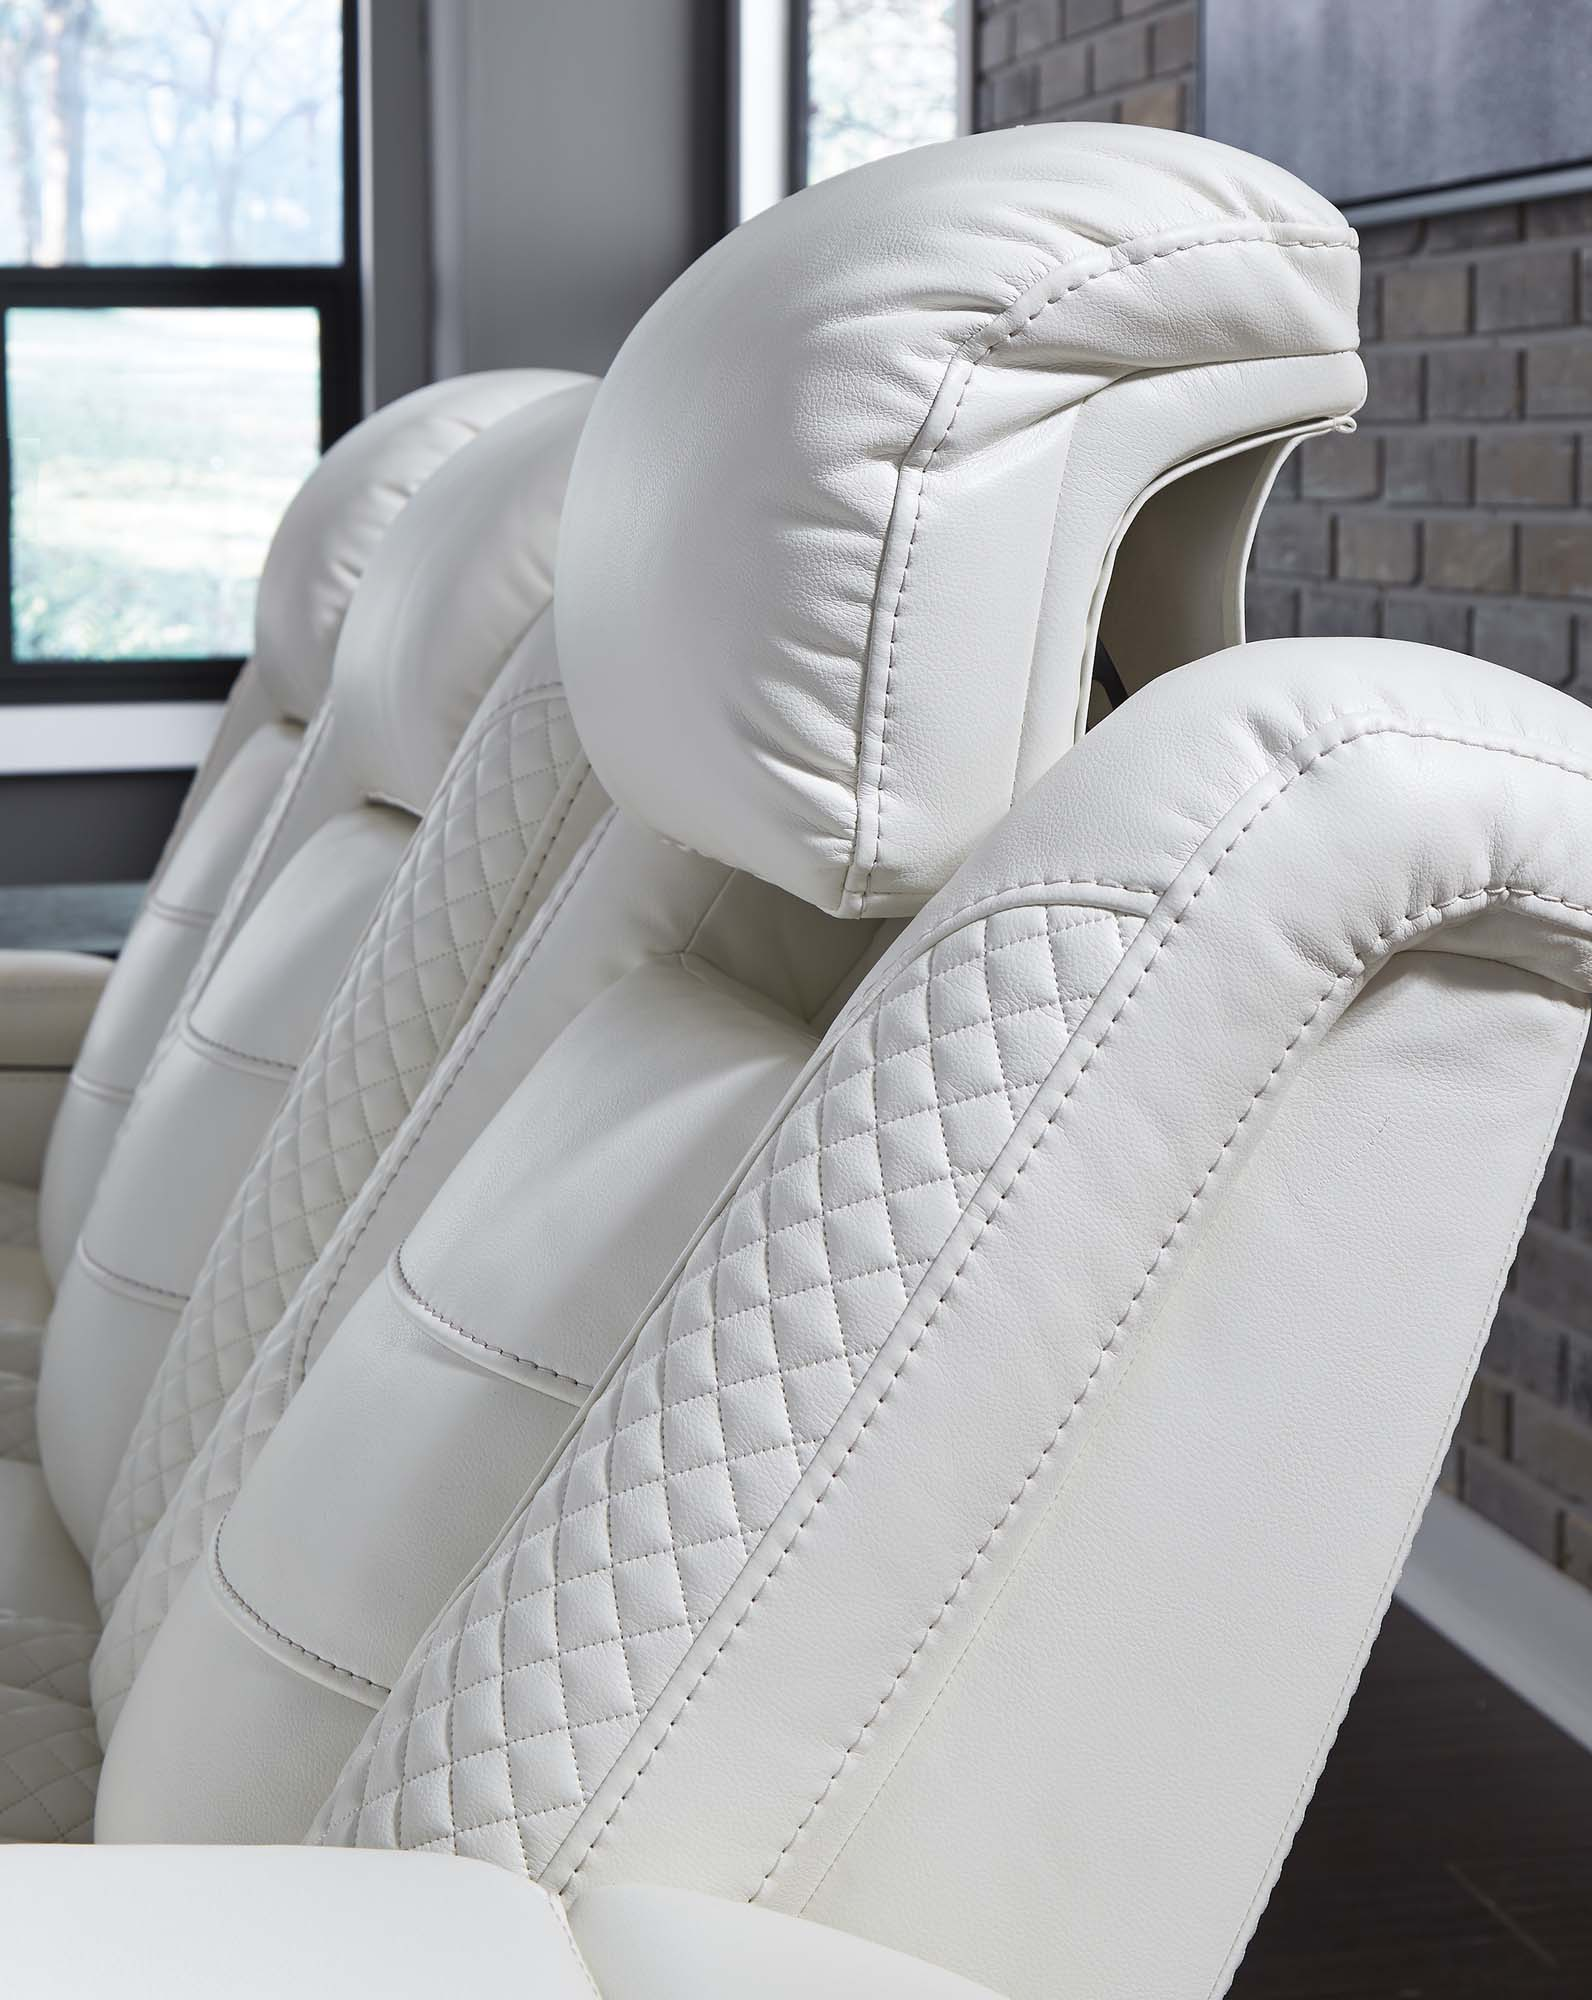 Party Time White Power Recliner Chair w/Adjustable Headrest - MJM Furniture